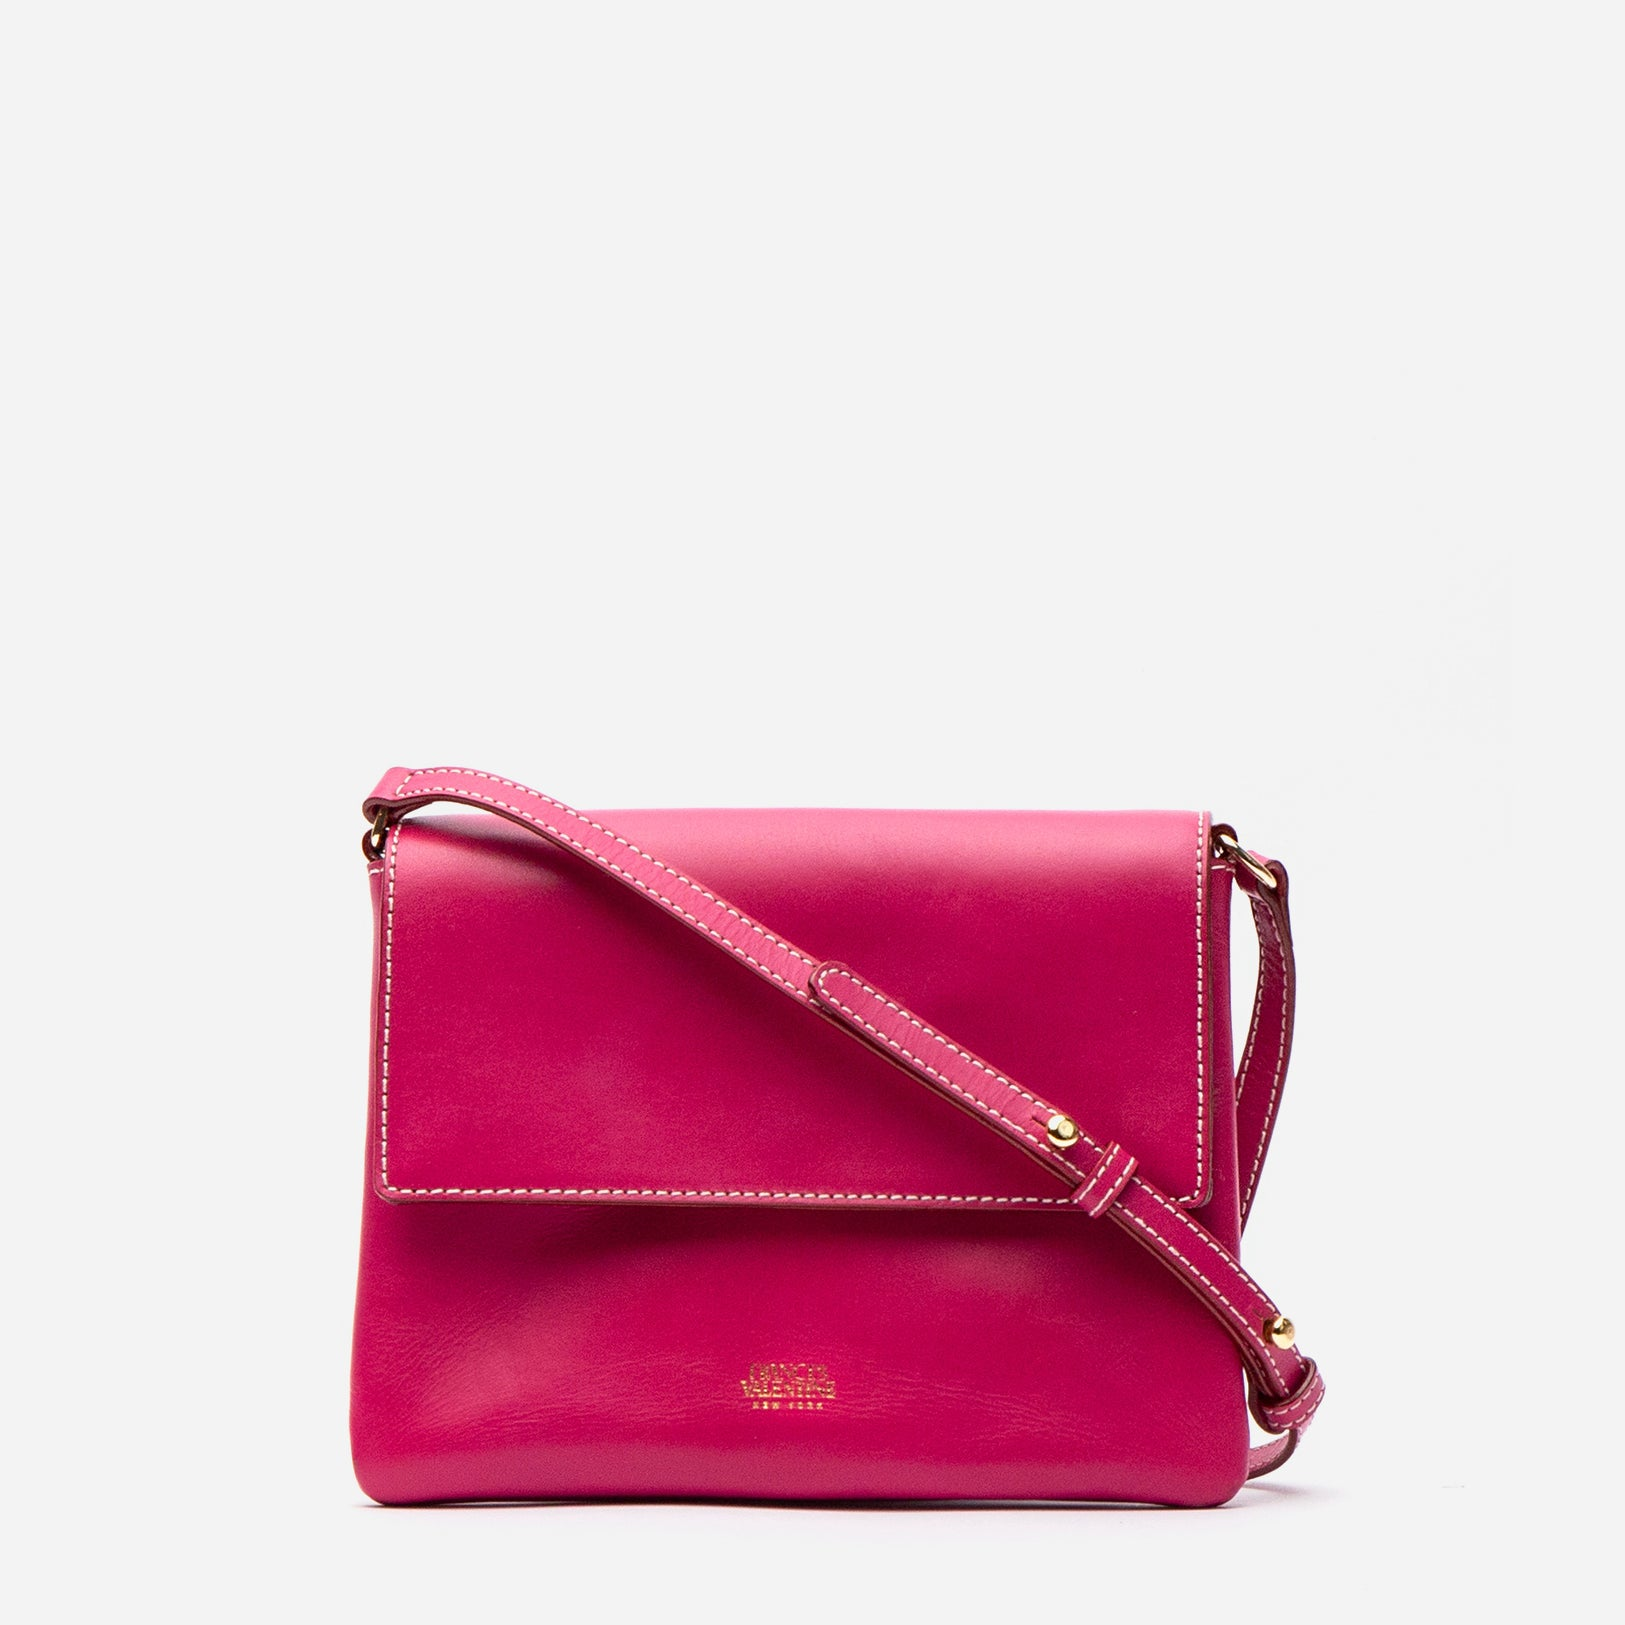 Maggie Slim Crossbody Vachetta Leather Bright Pink - Frances Valentine